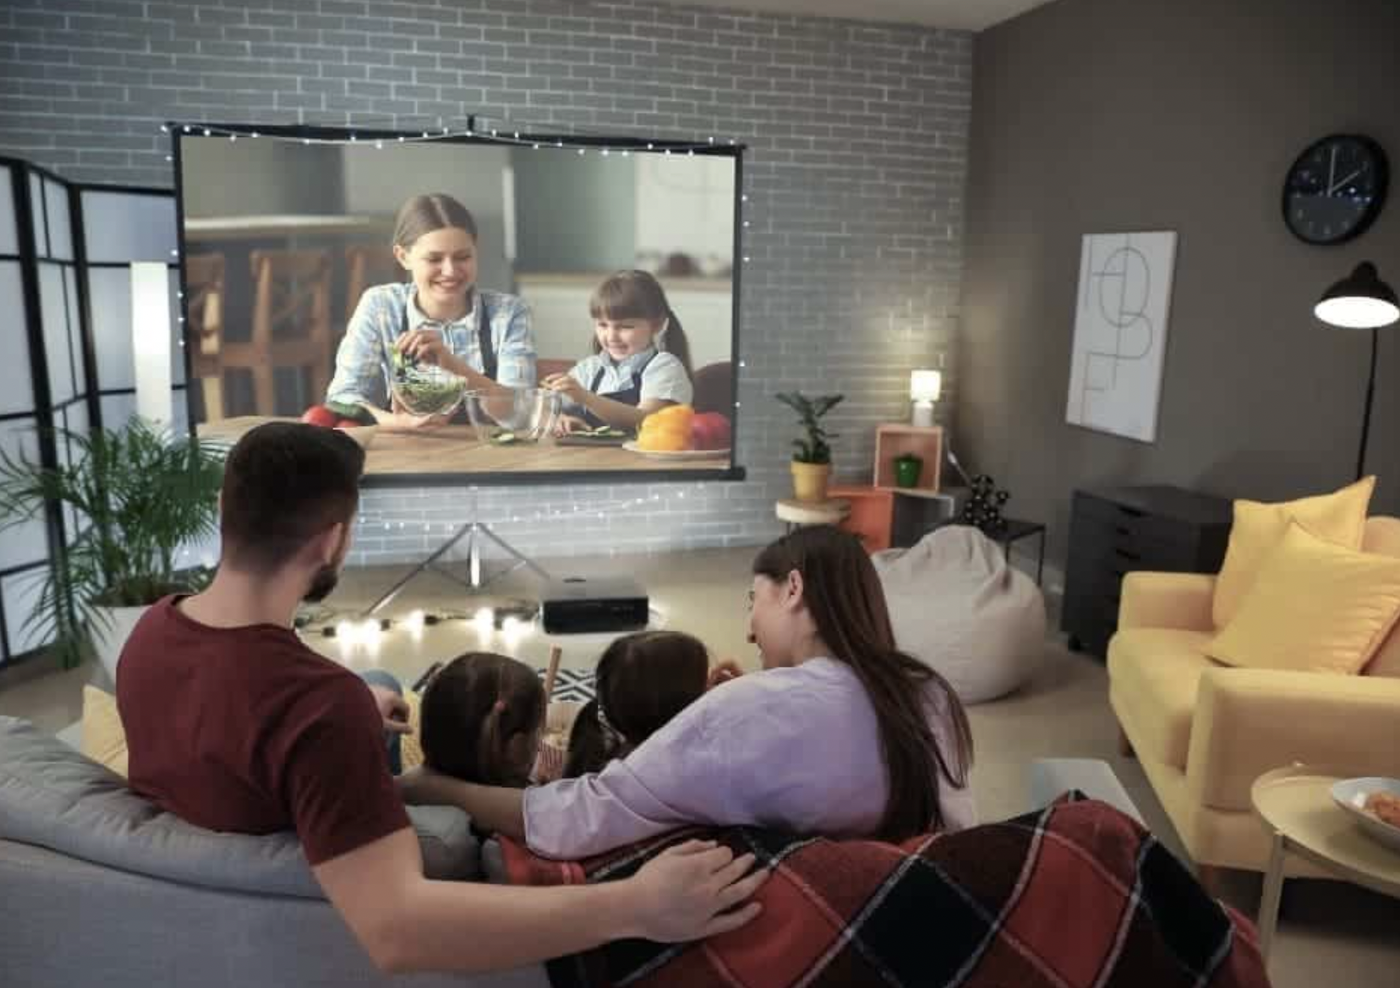 10 Fun Things You Can Do with a TV Projector